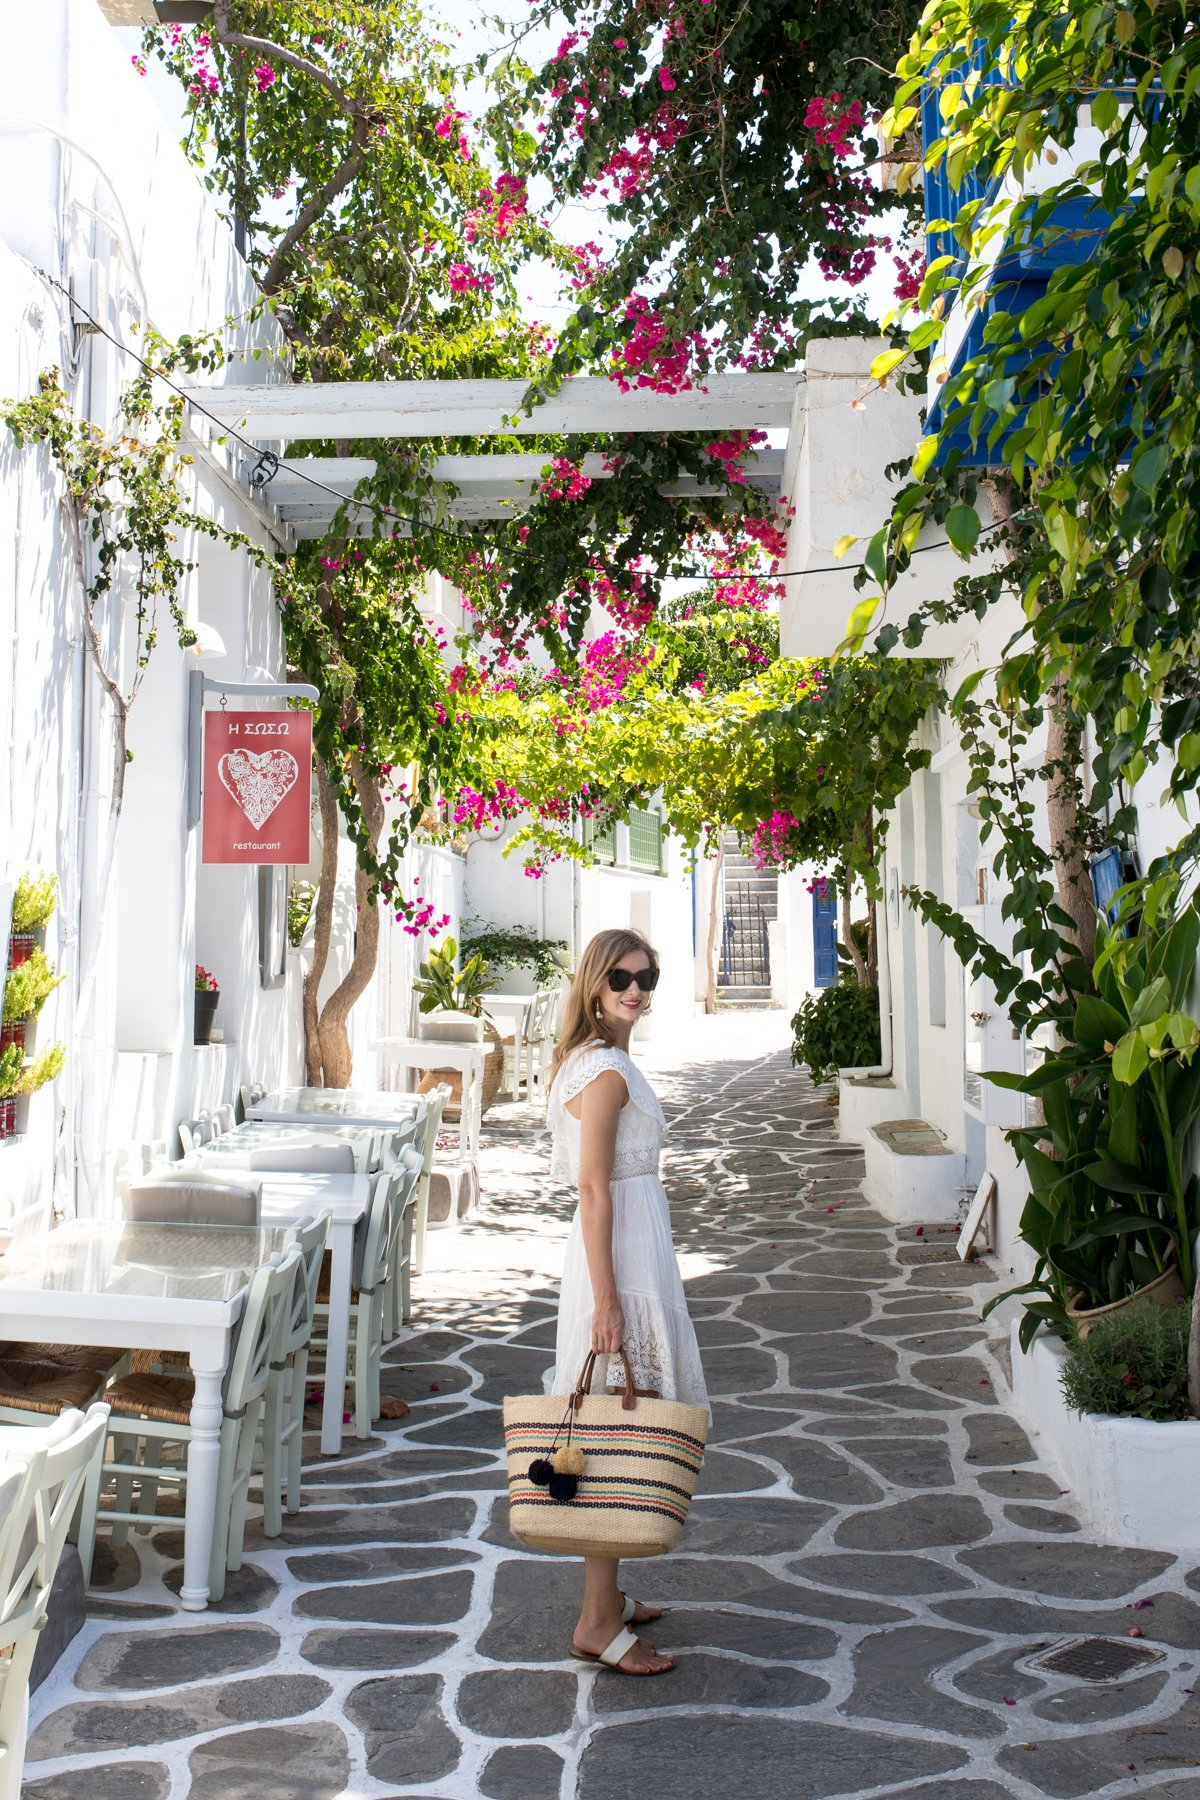 Stacie Flinner Travel Guide Paros Greece-17.jpg